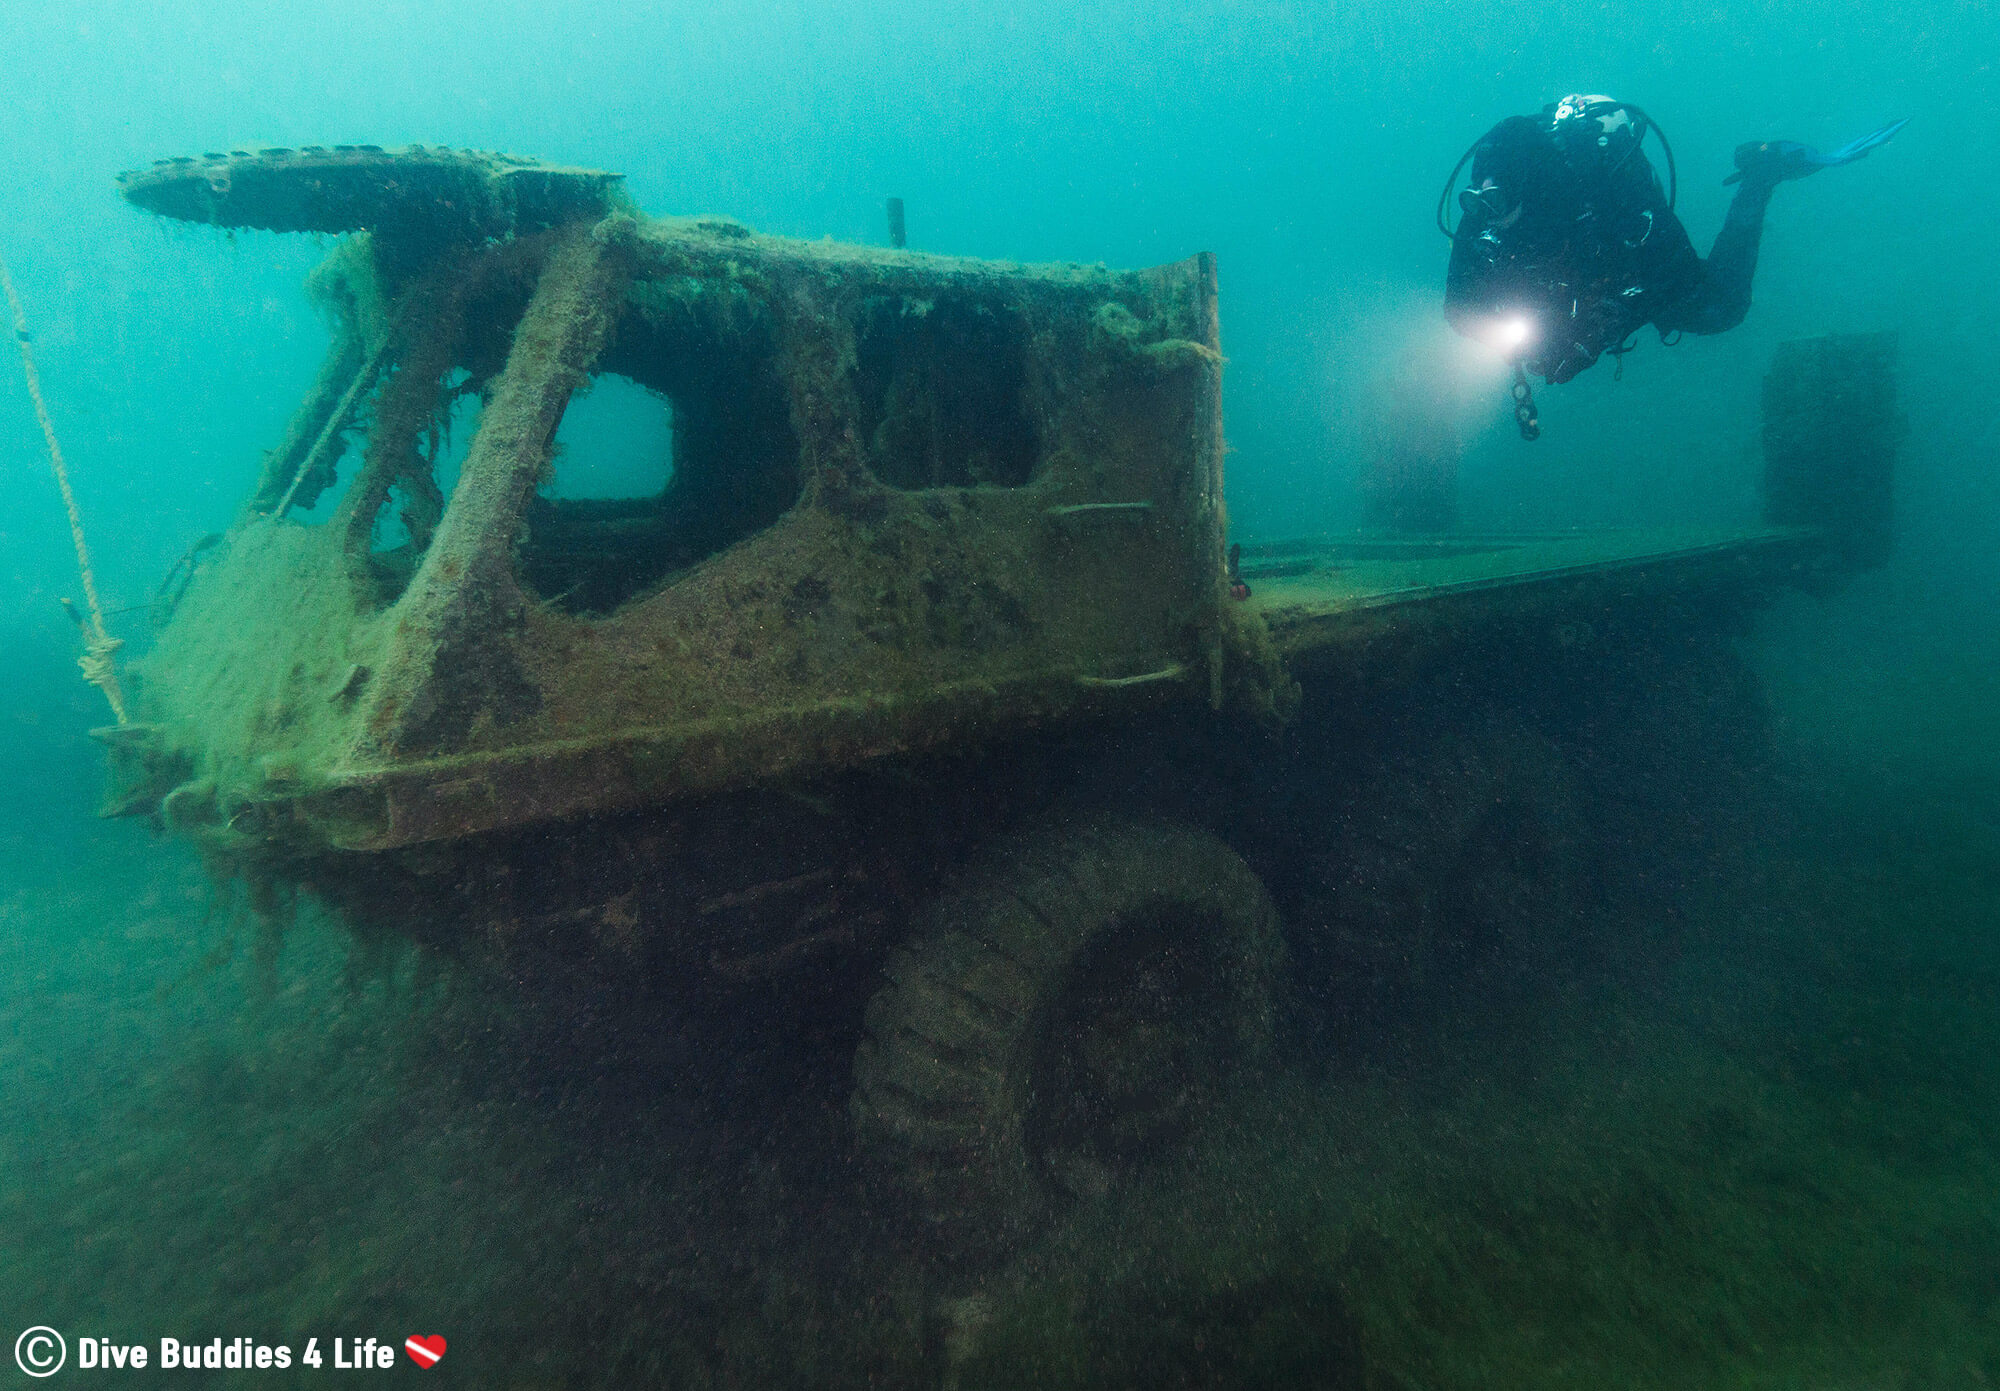 A Scuba Diver Above An Army Truck In The Chepstow Quarry, United Kingdom